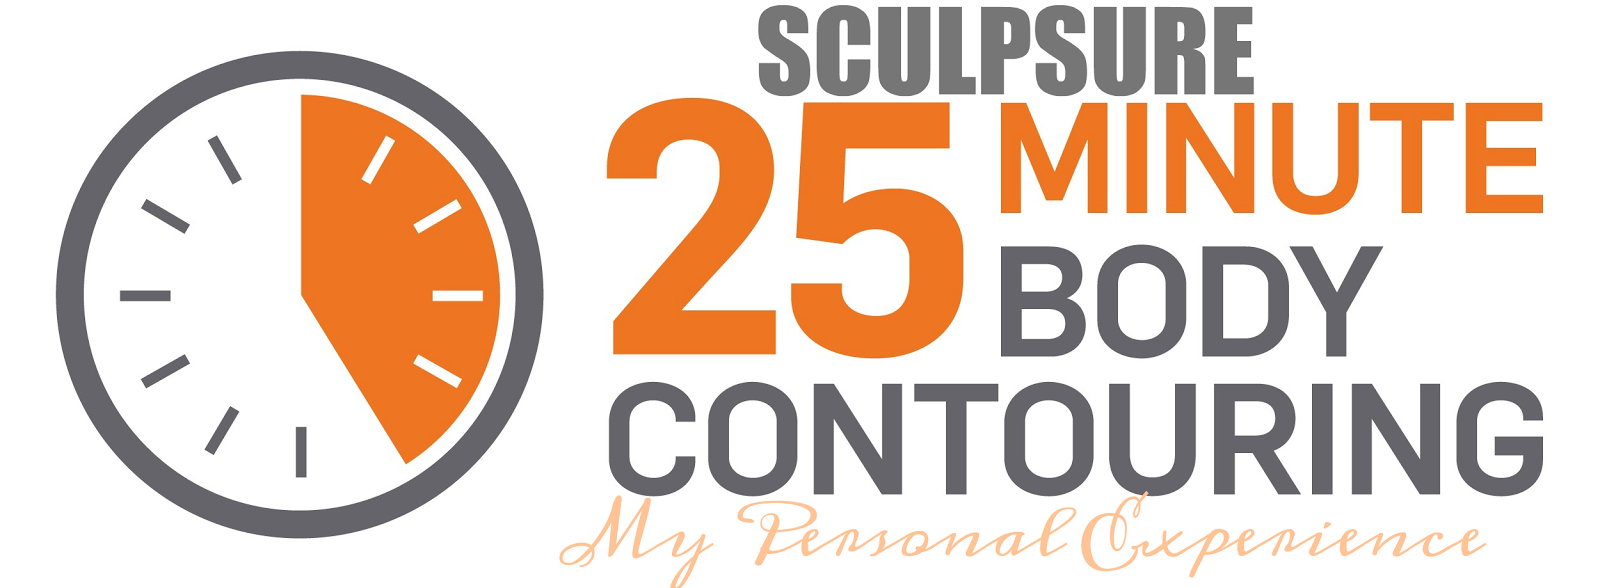 Sculpsure Laser Body Contouring